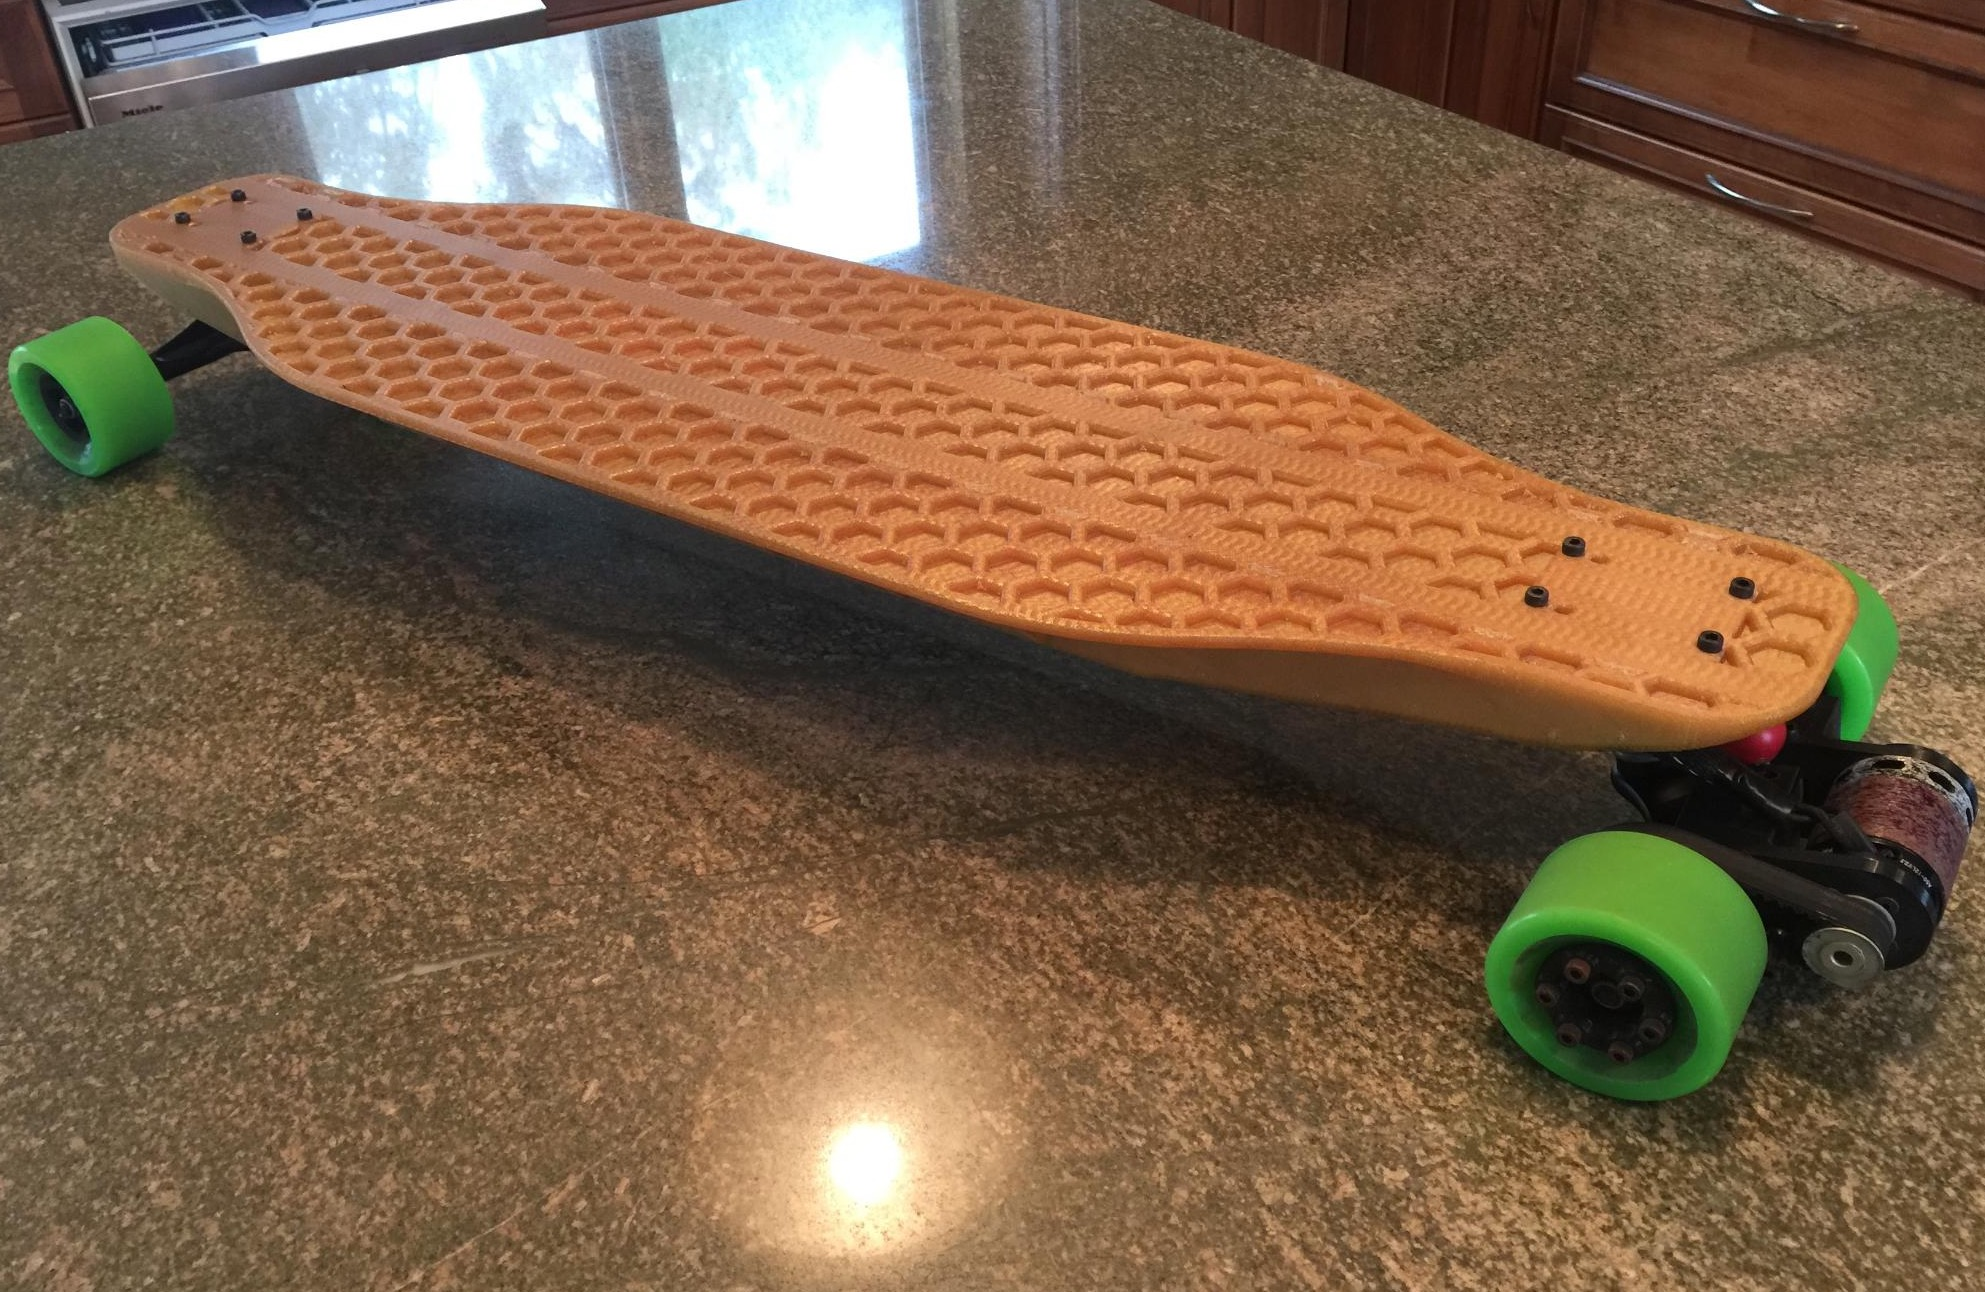 3D Printed Longboard Illustrates the Best and Worst of 3D Printing